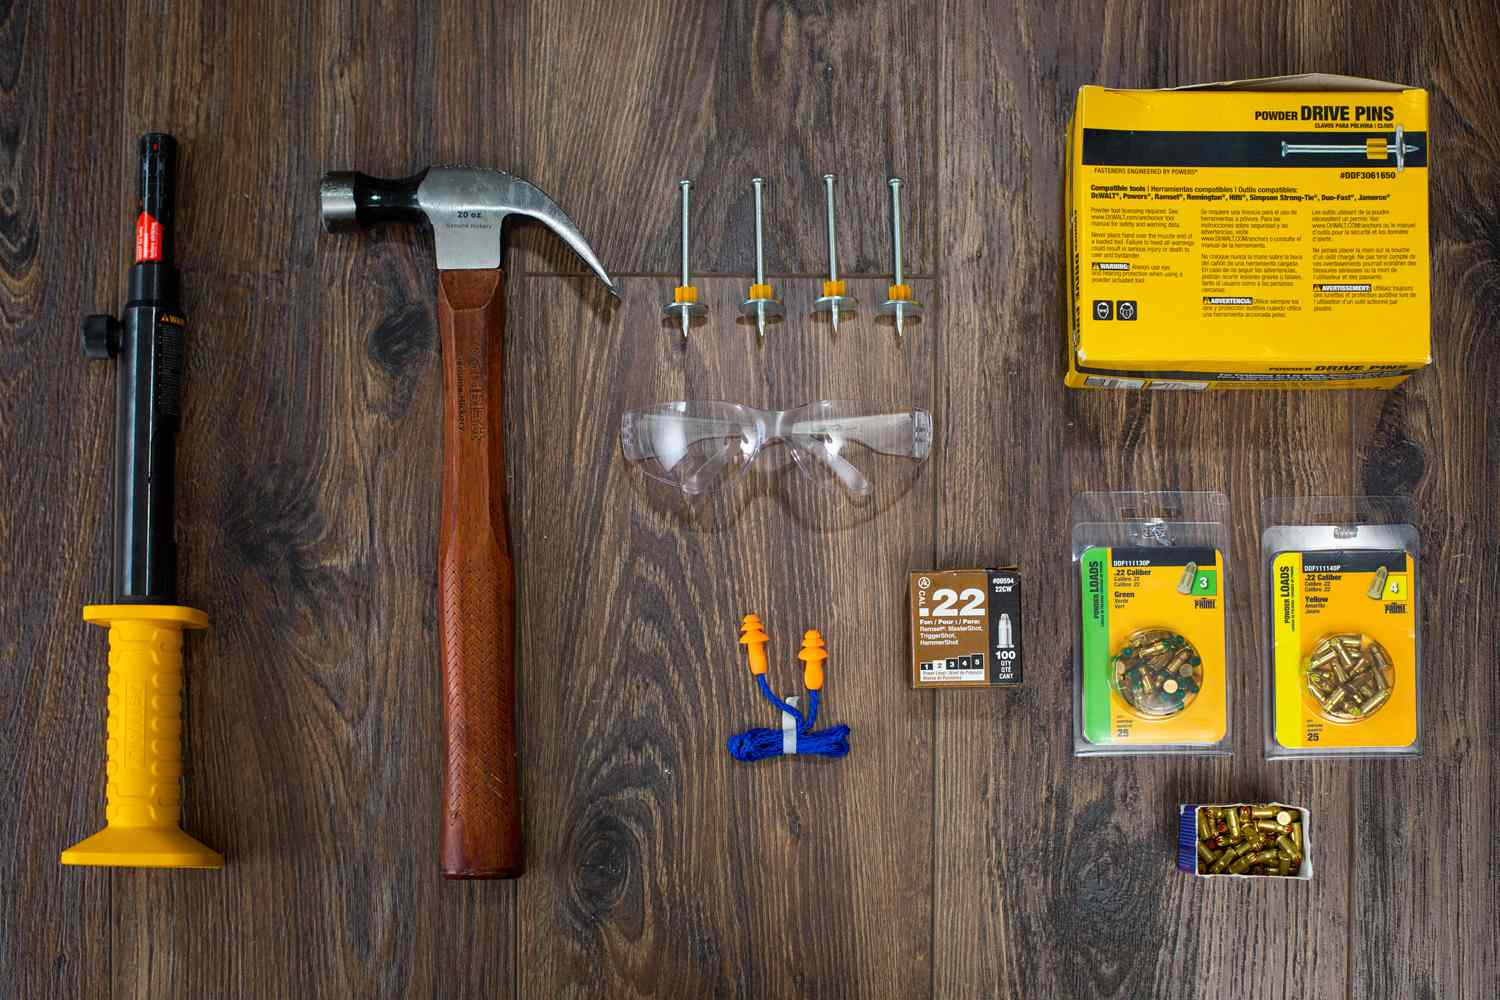 Materials and tools to use a concrete nail gun on wooden surface